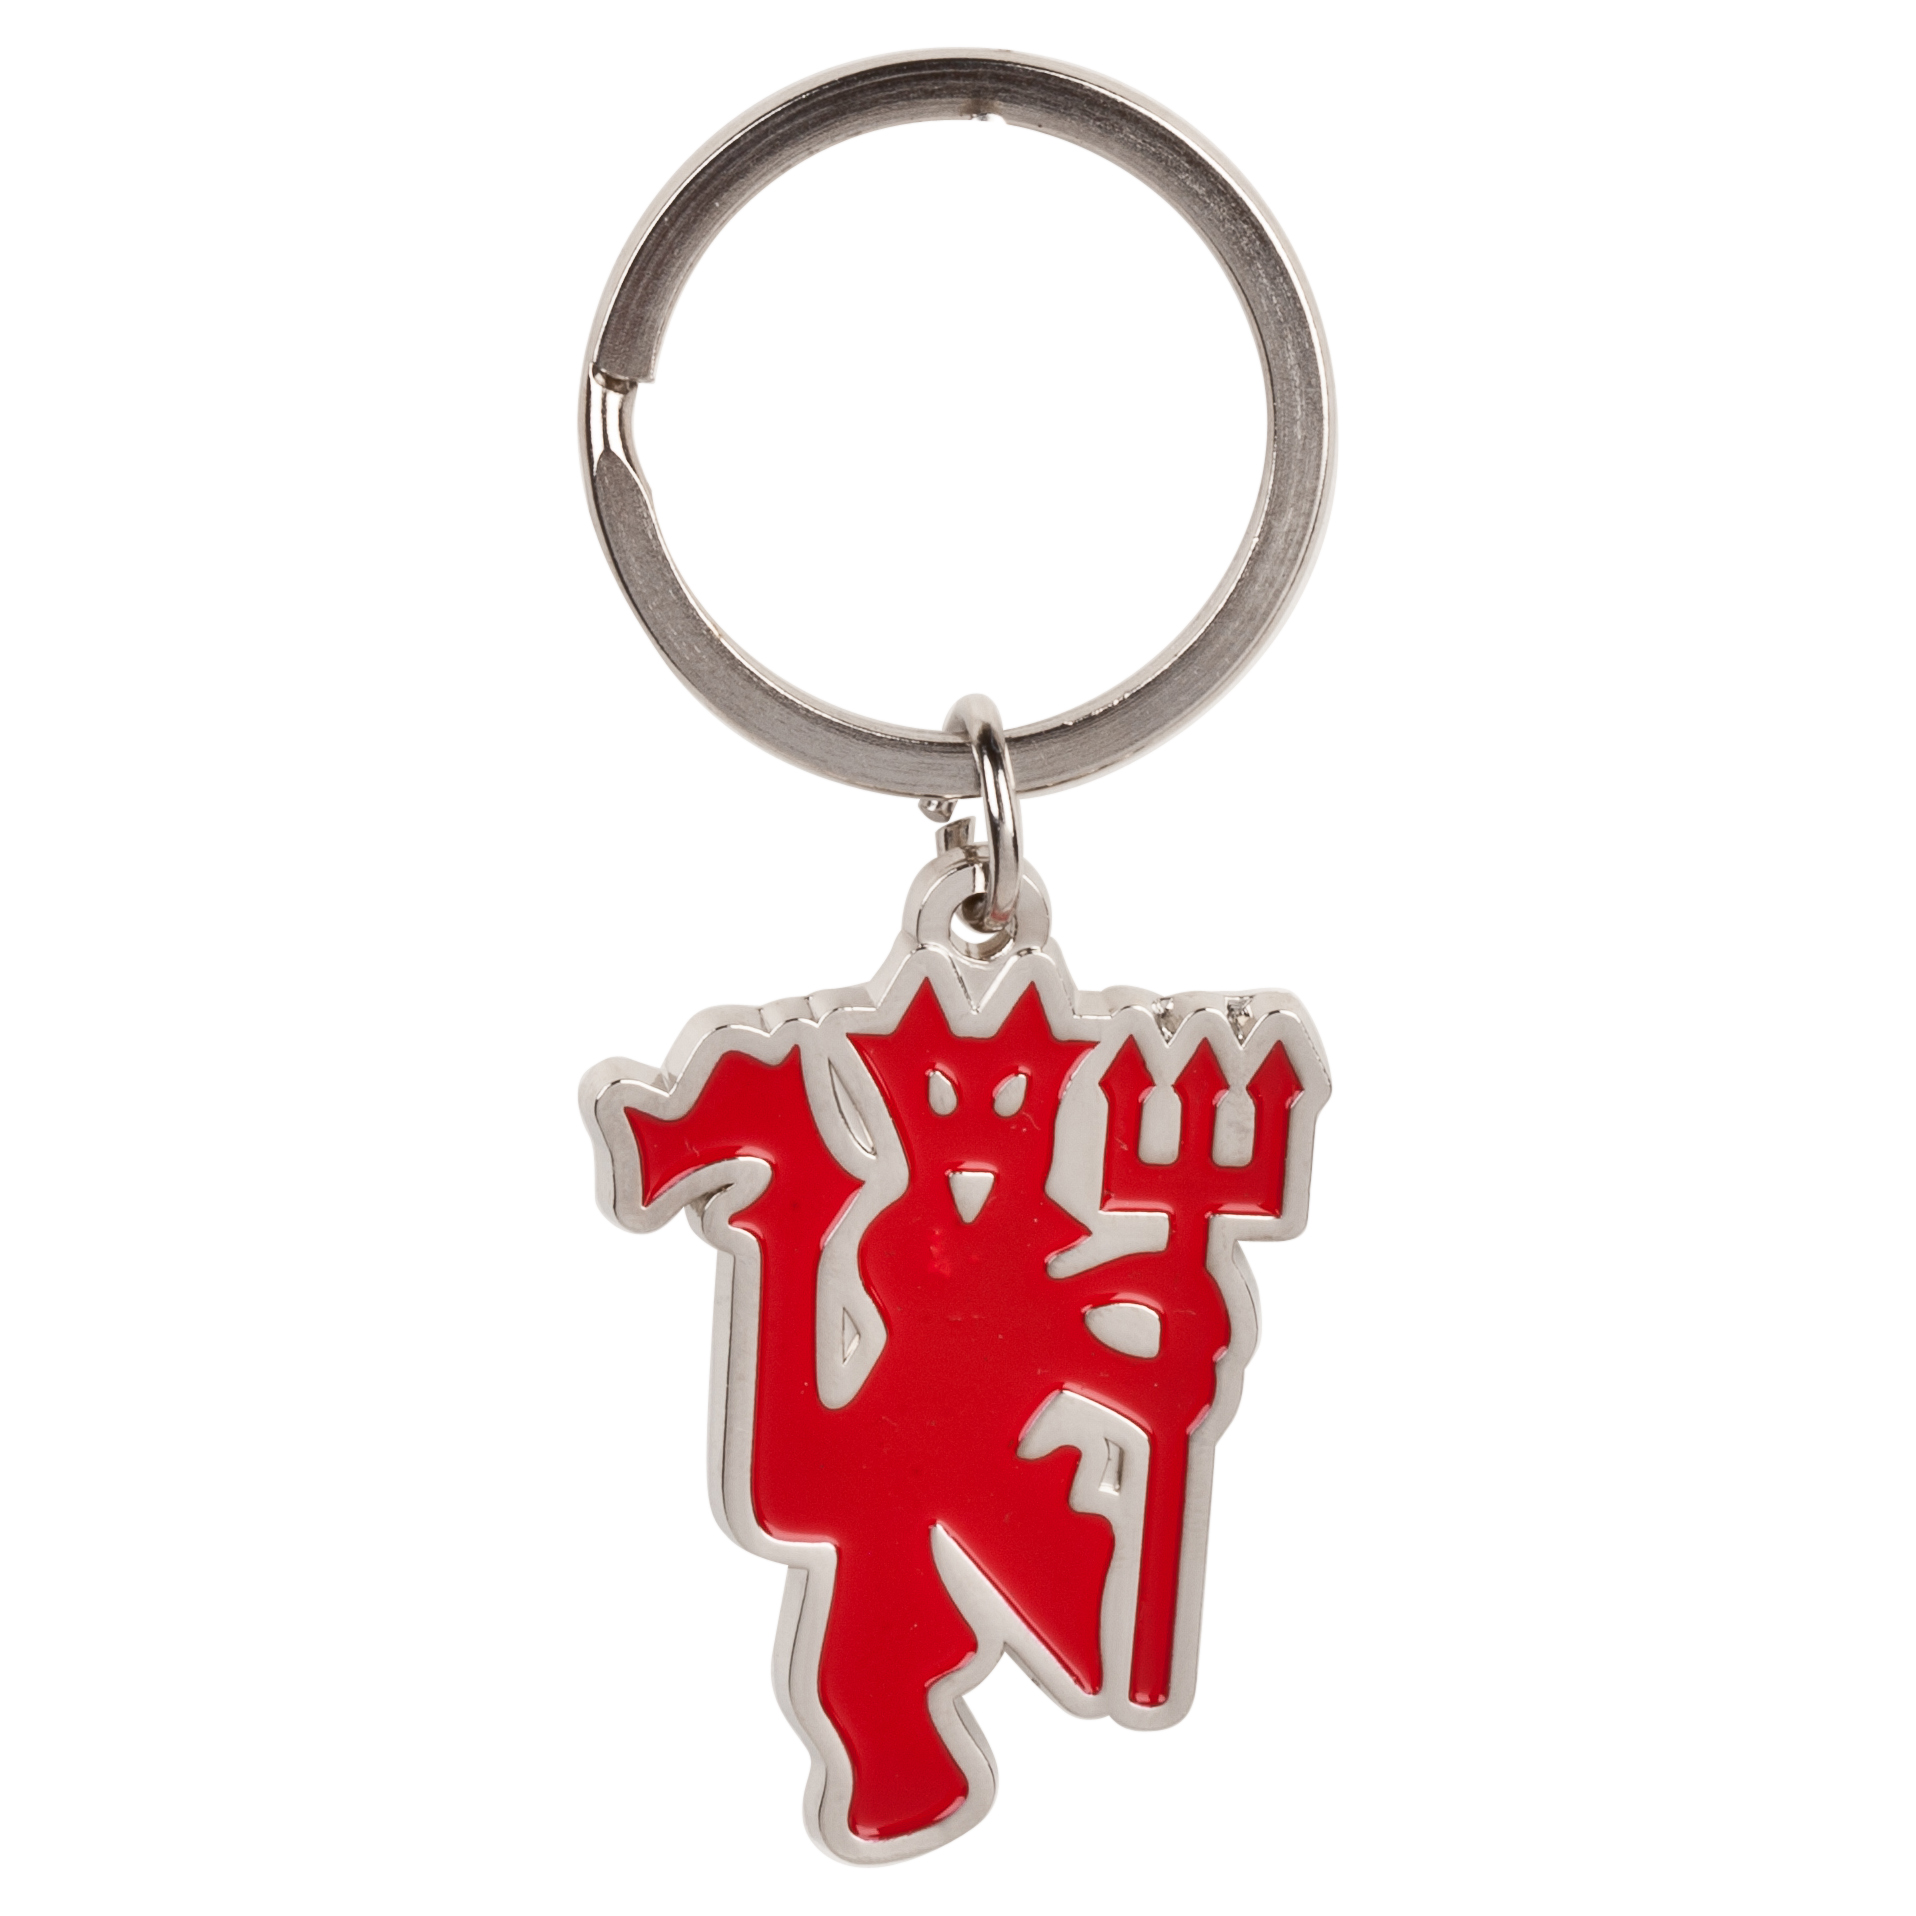 Manchester United Red Devil Key Ring